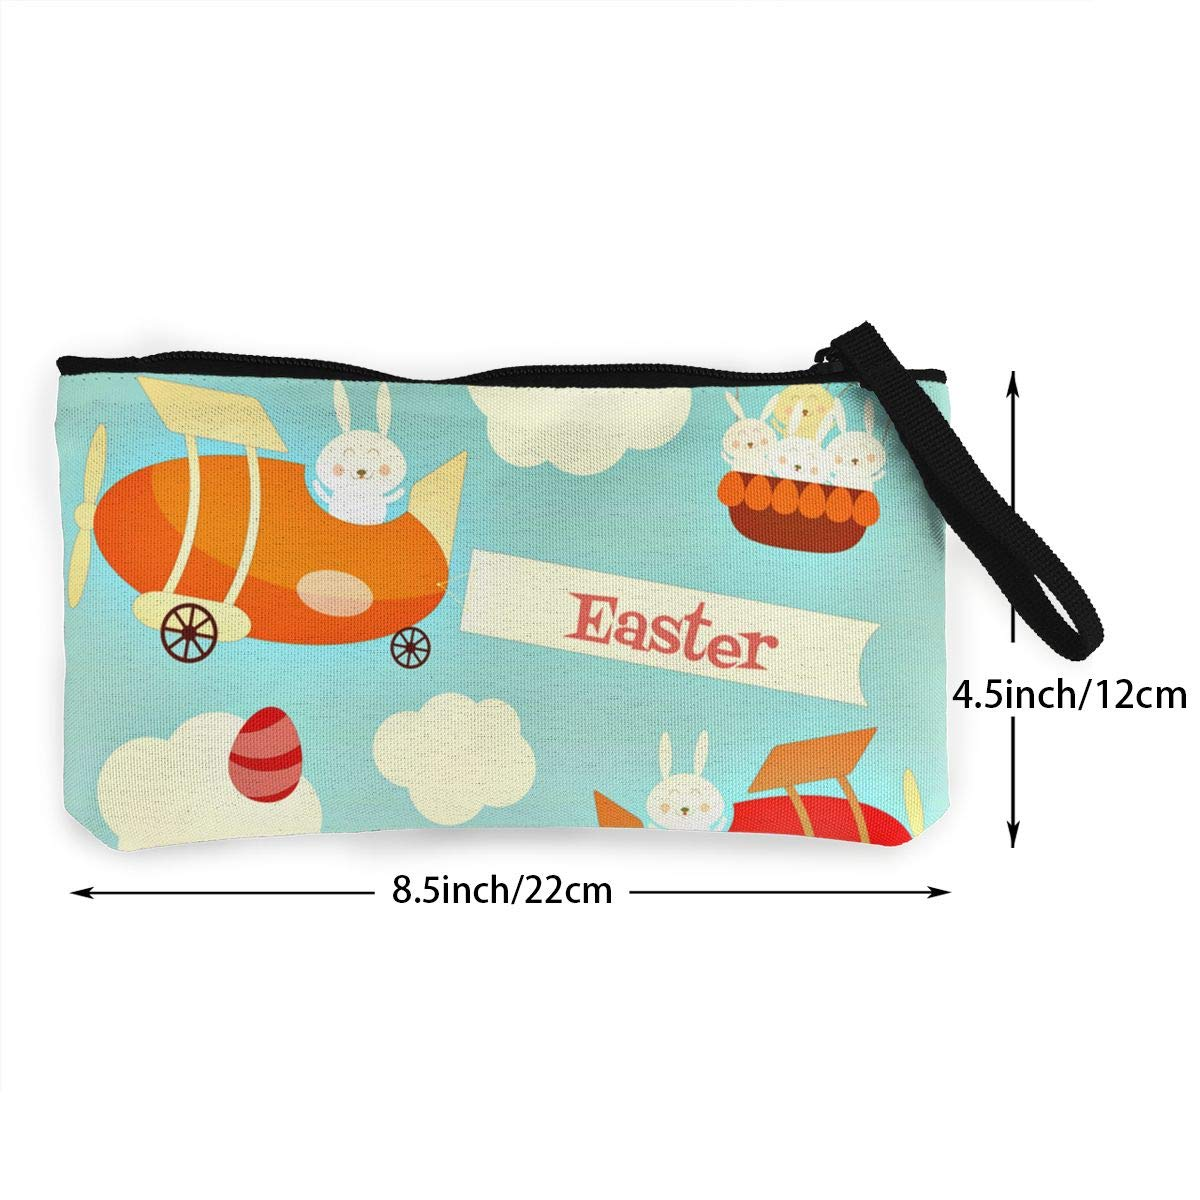 Maple Memories Easter Eggs Bunny Portable Canvas Coin Purse Change Purse Pouch Mini Wallet Gifts For Women Girls